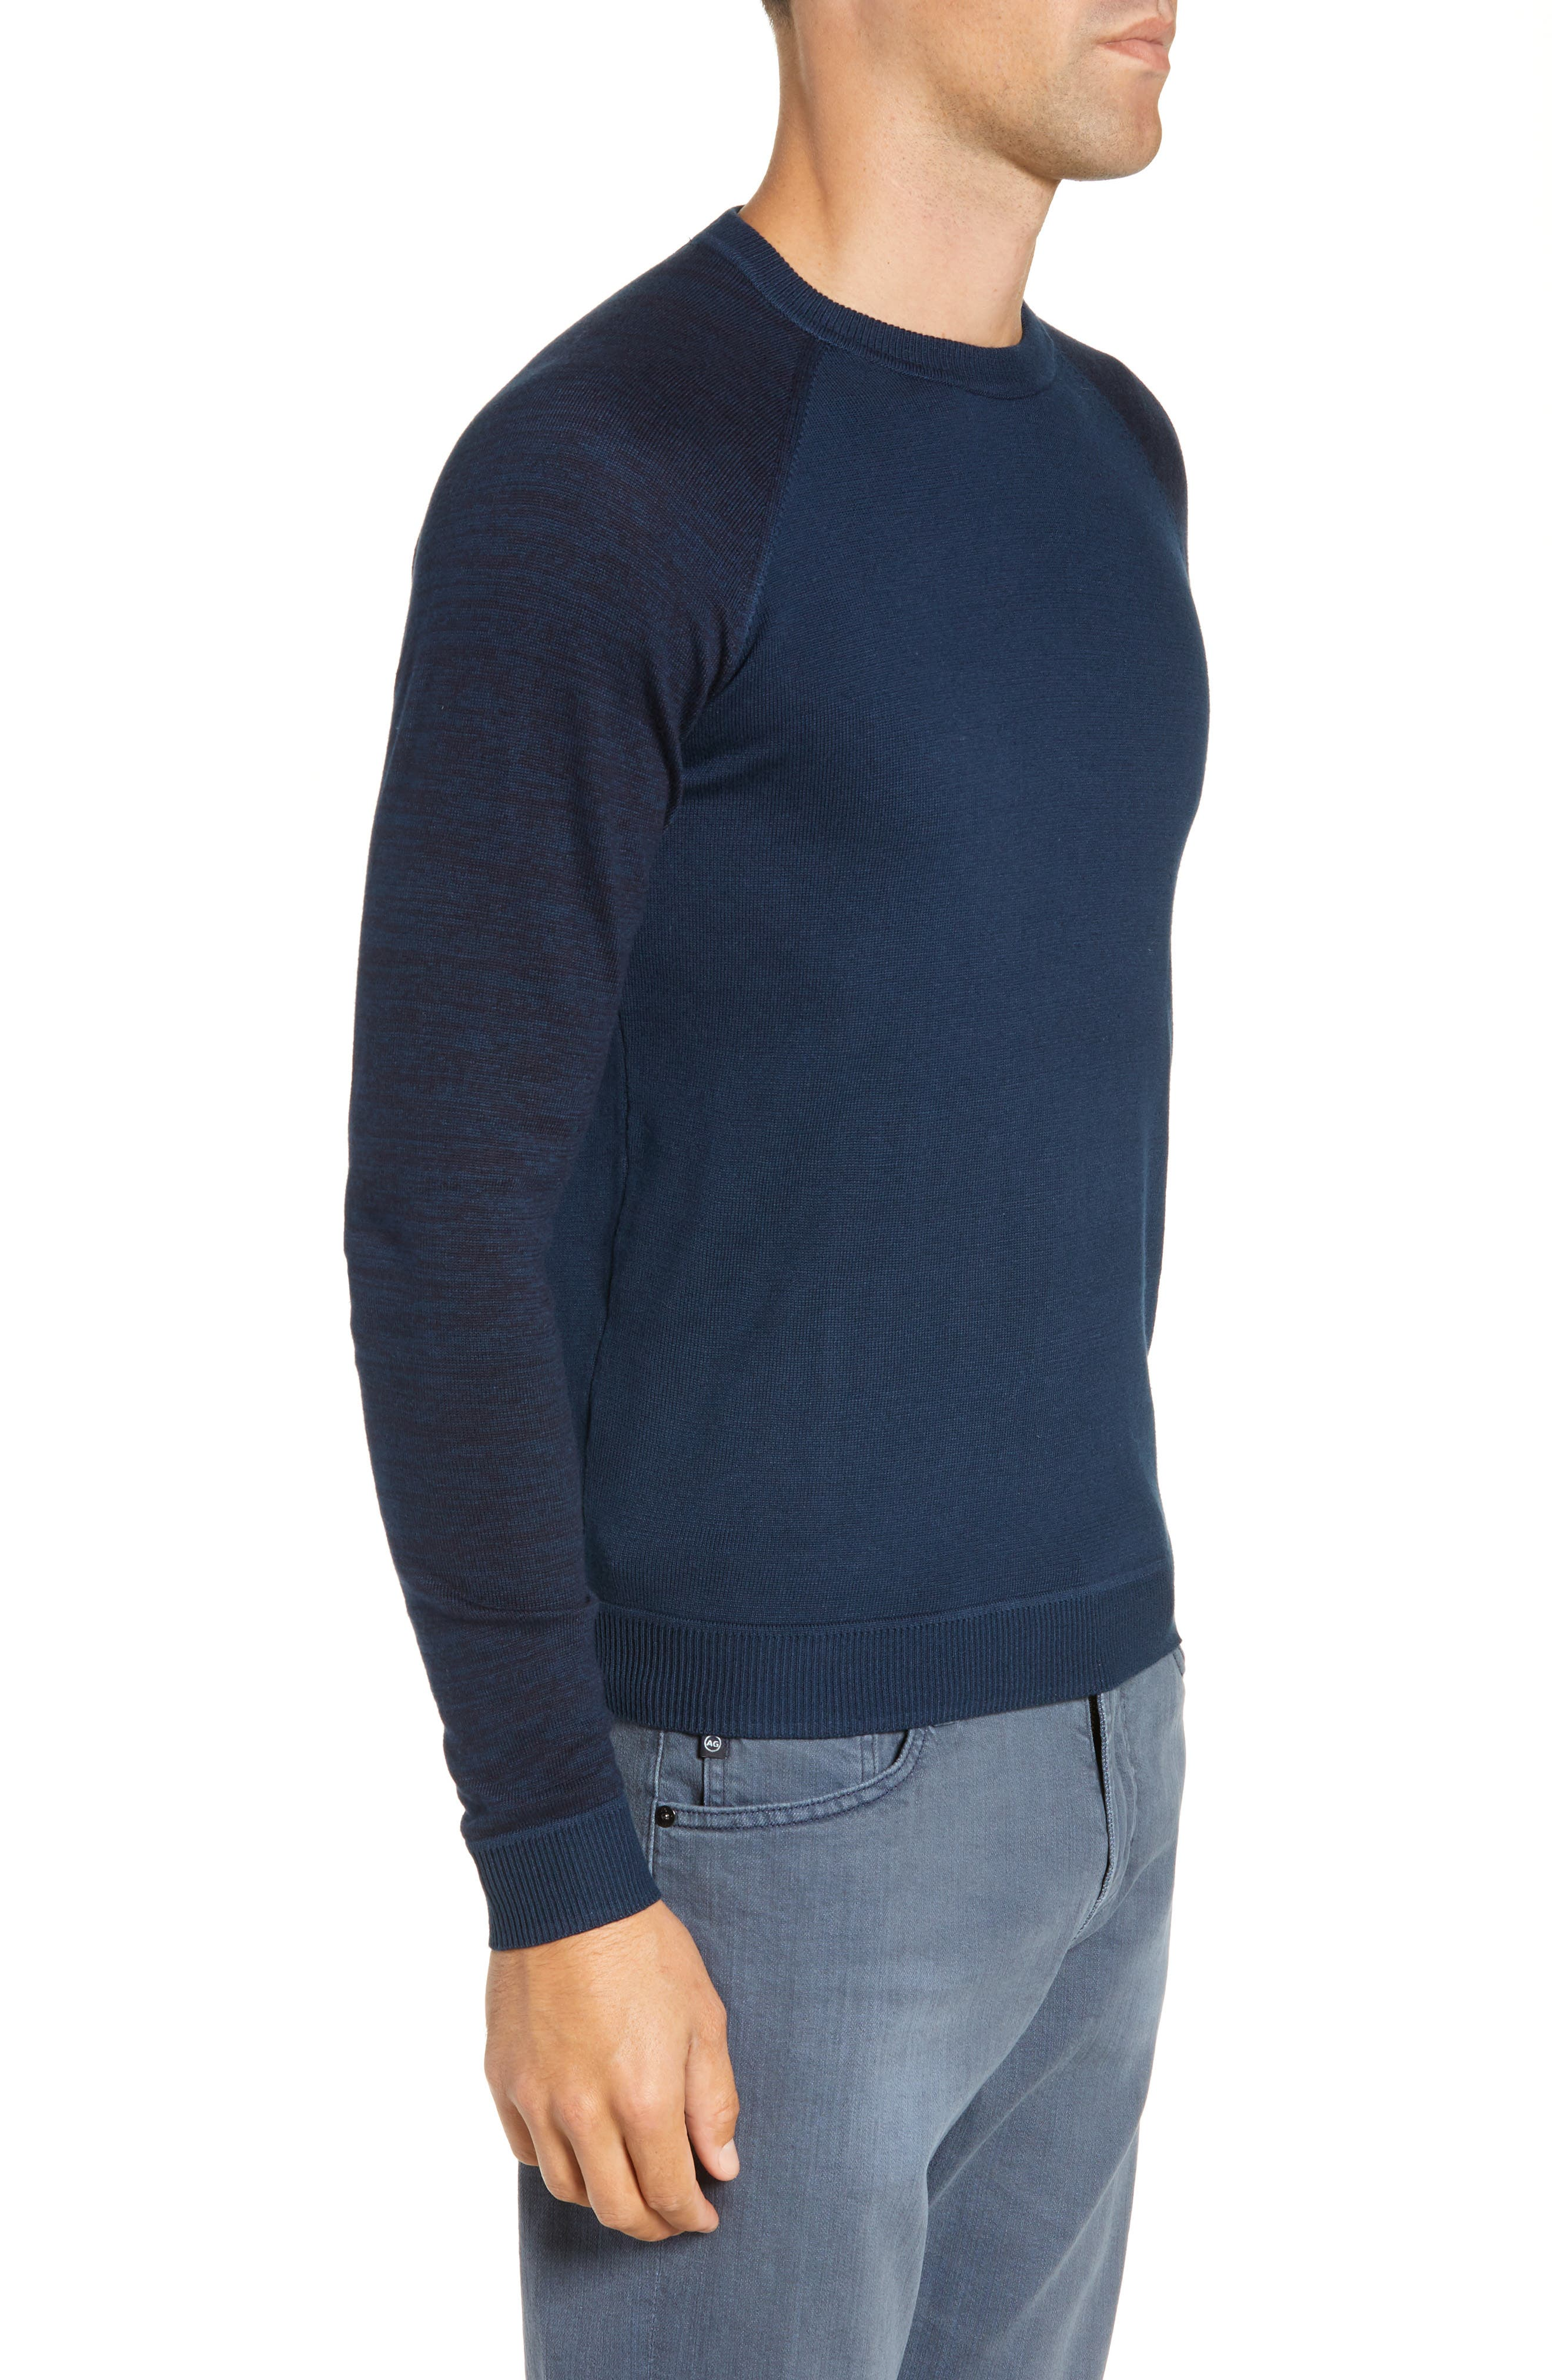 Cornfed Slim Fit Sweater,                             Alternate thumbnail 3, color,                             TEAL-BLUE